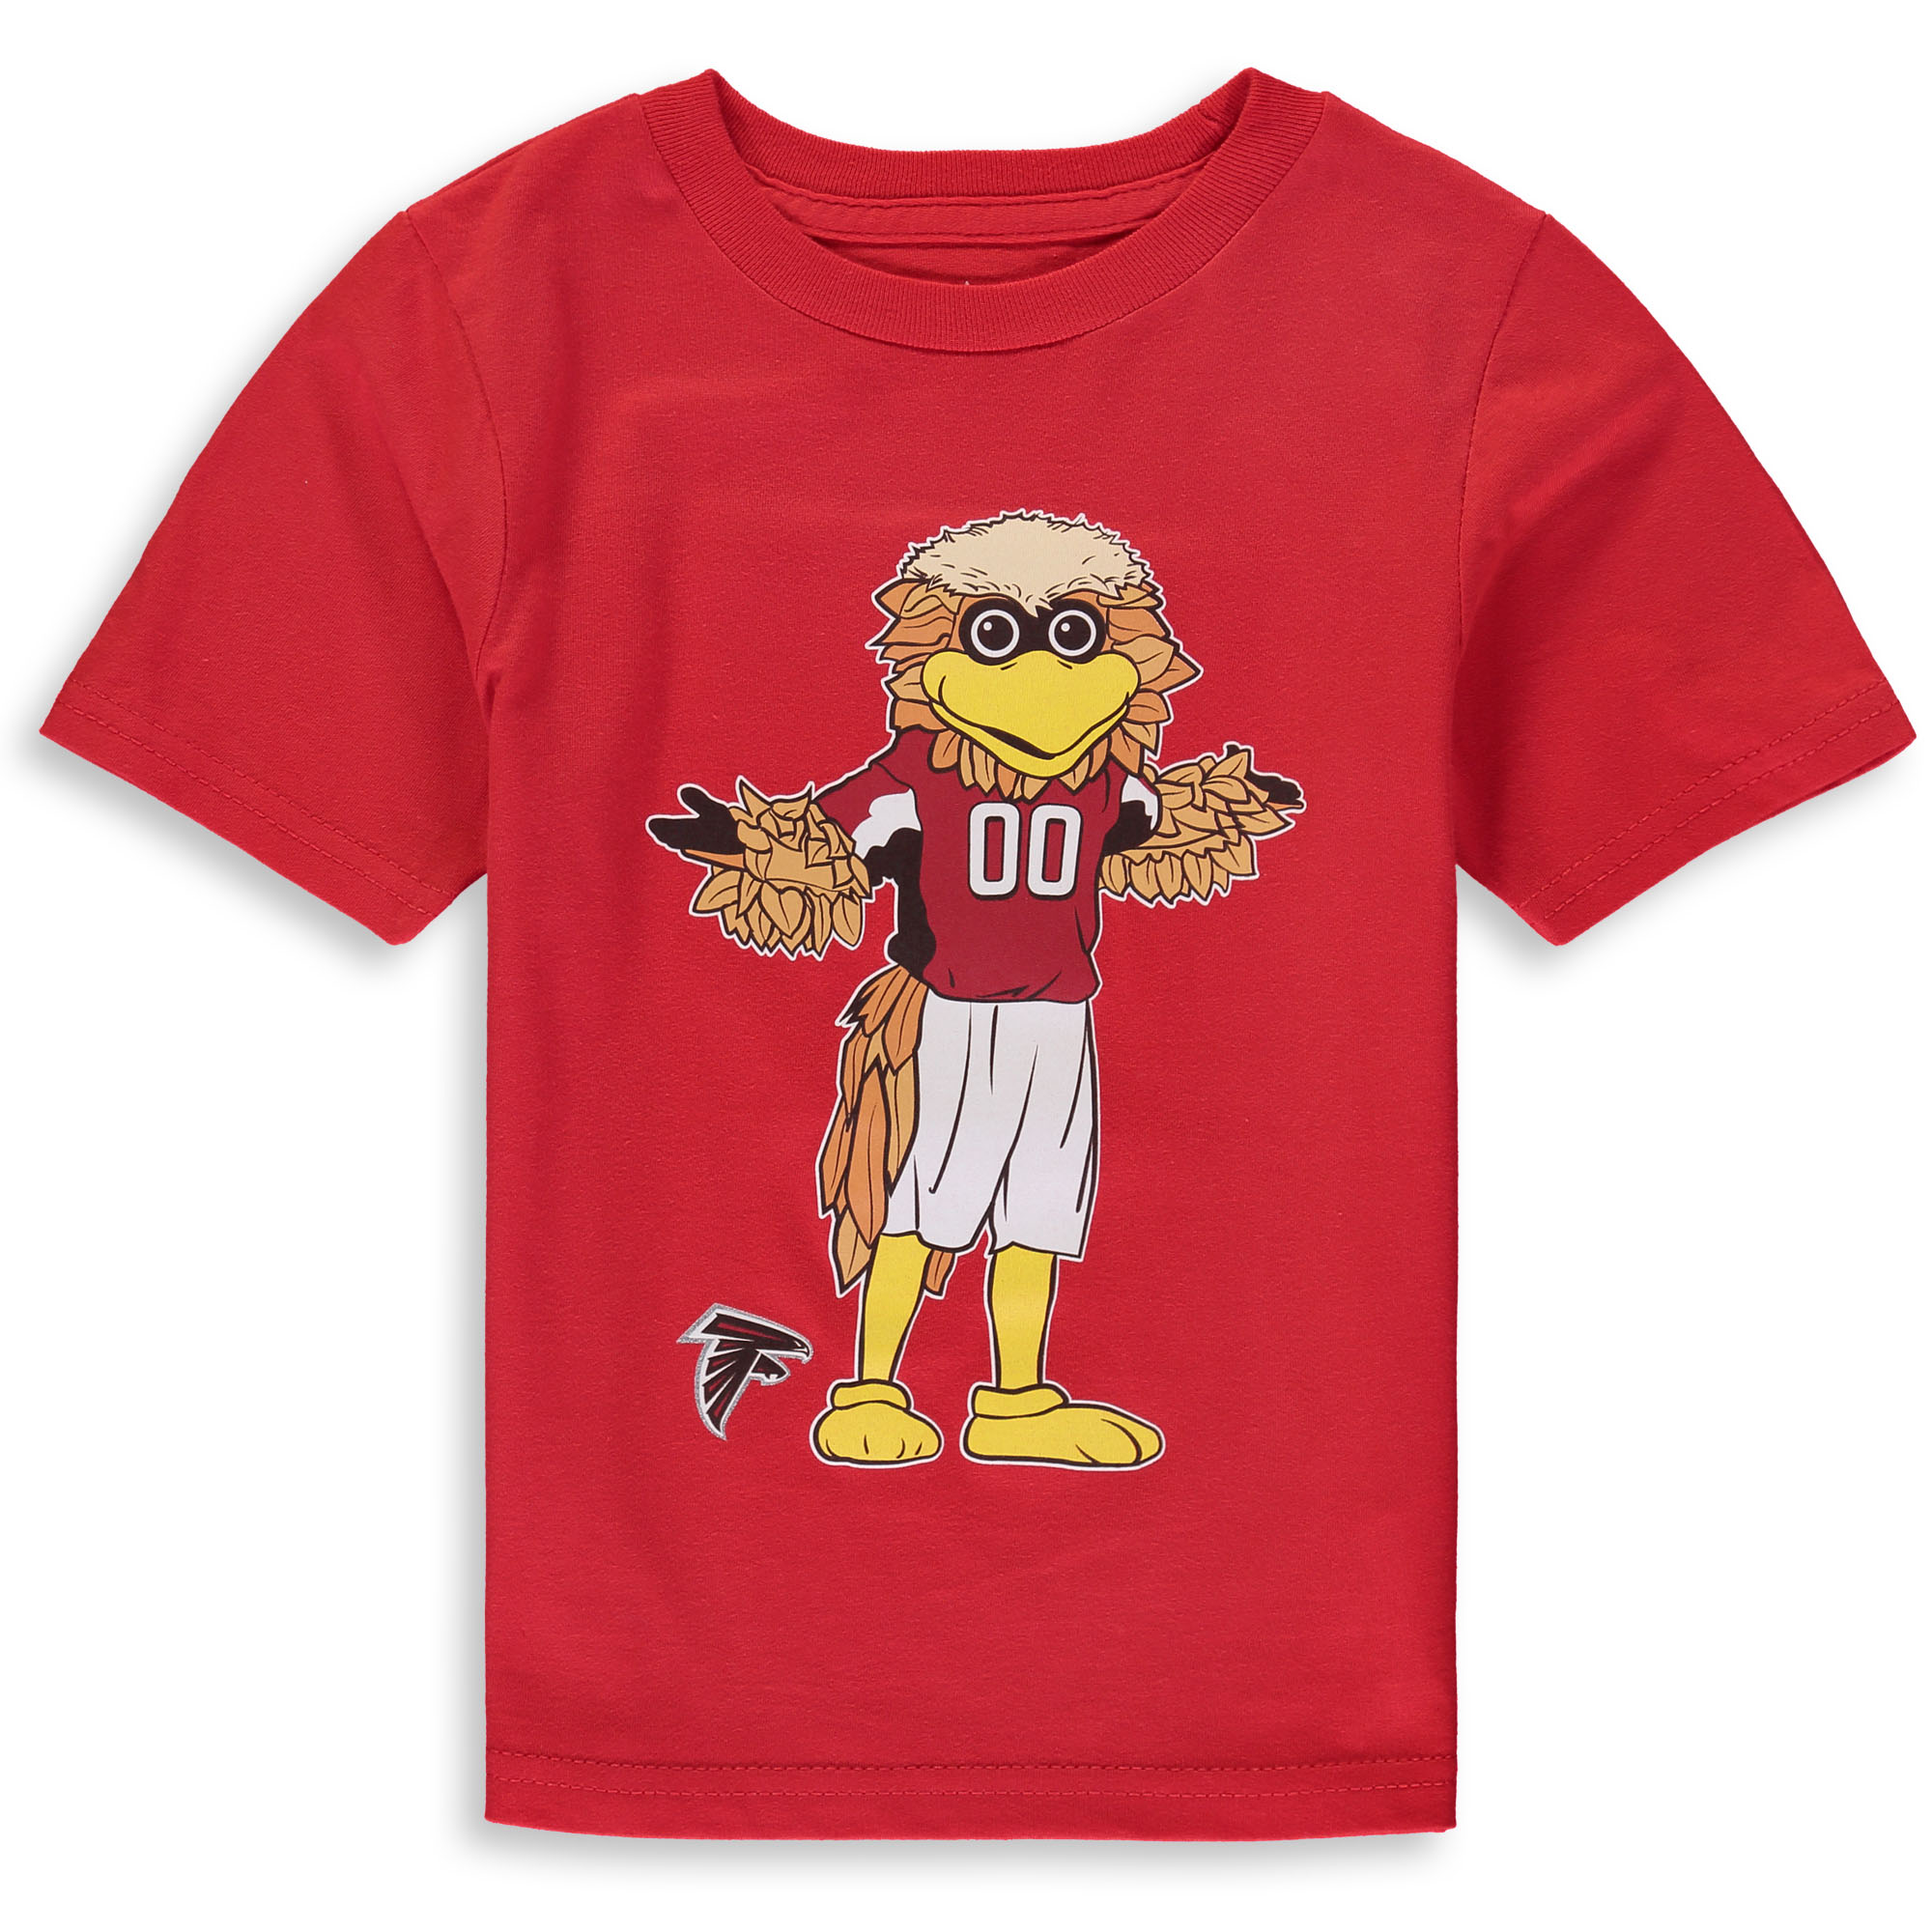 Atlanta Falcons Preschool Standing Mascot T-Shirt - Red